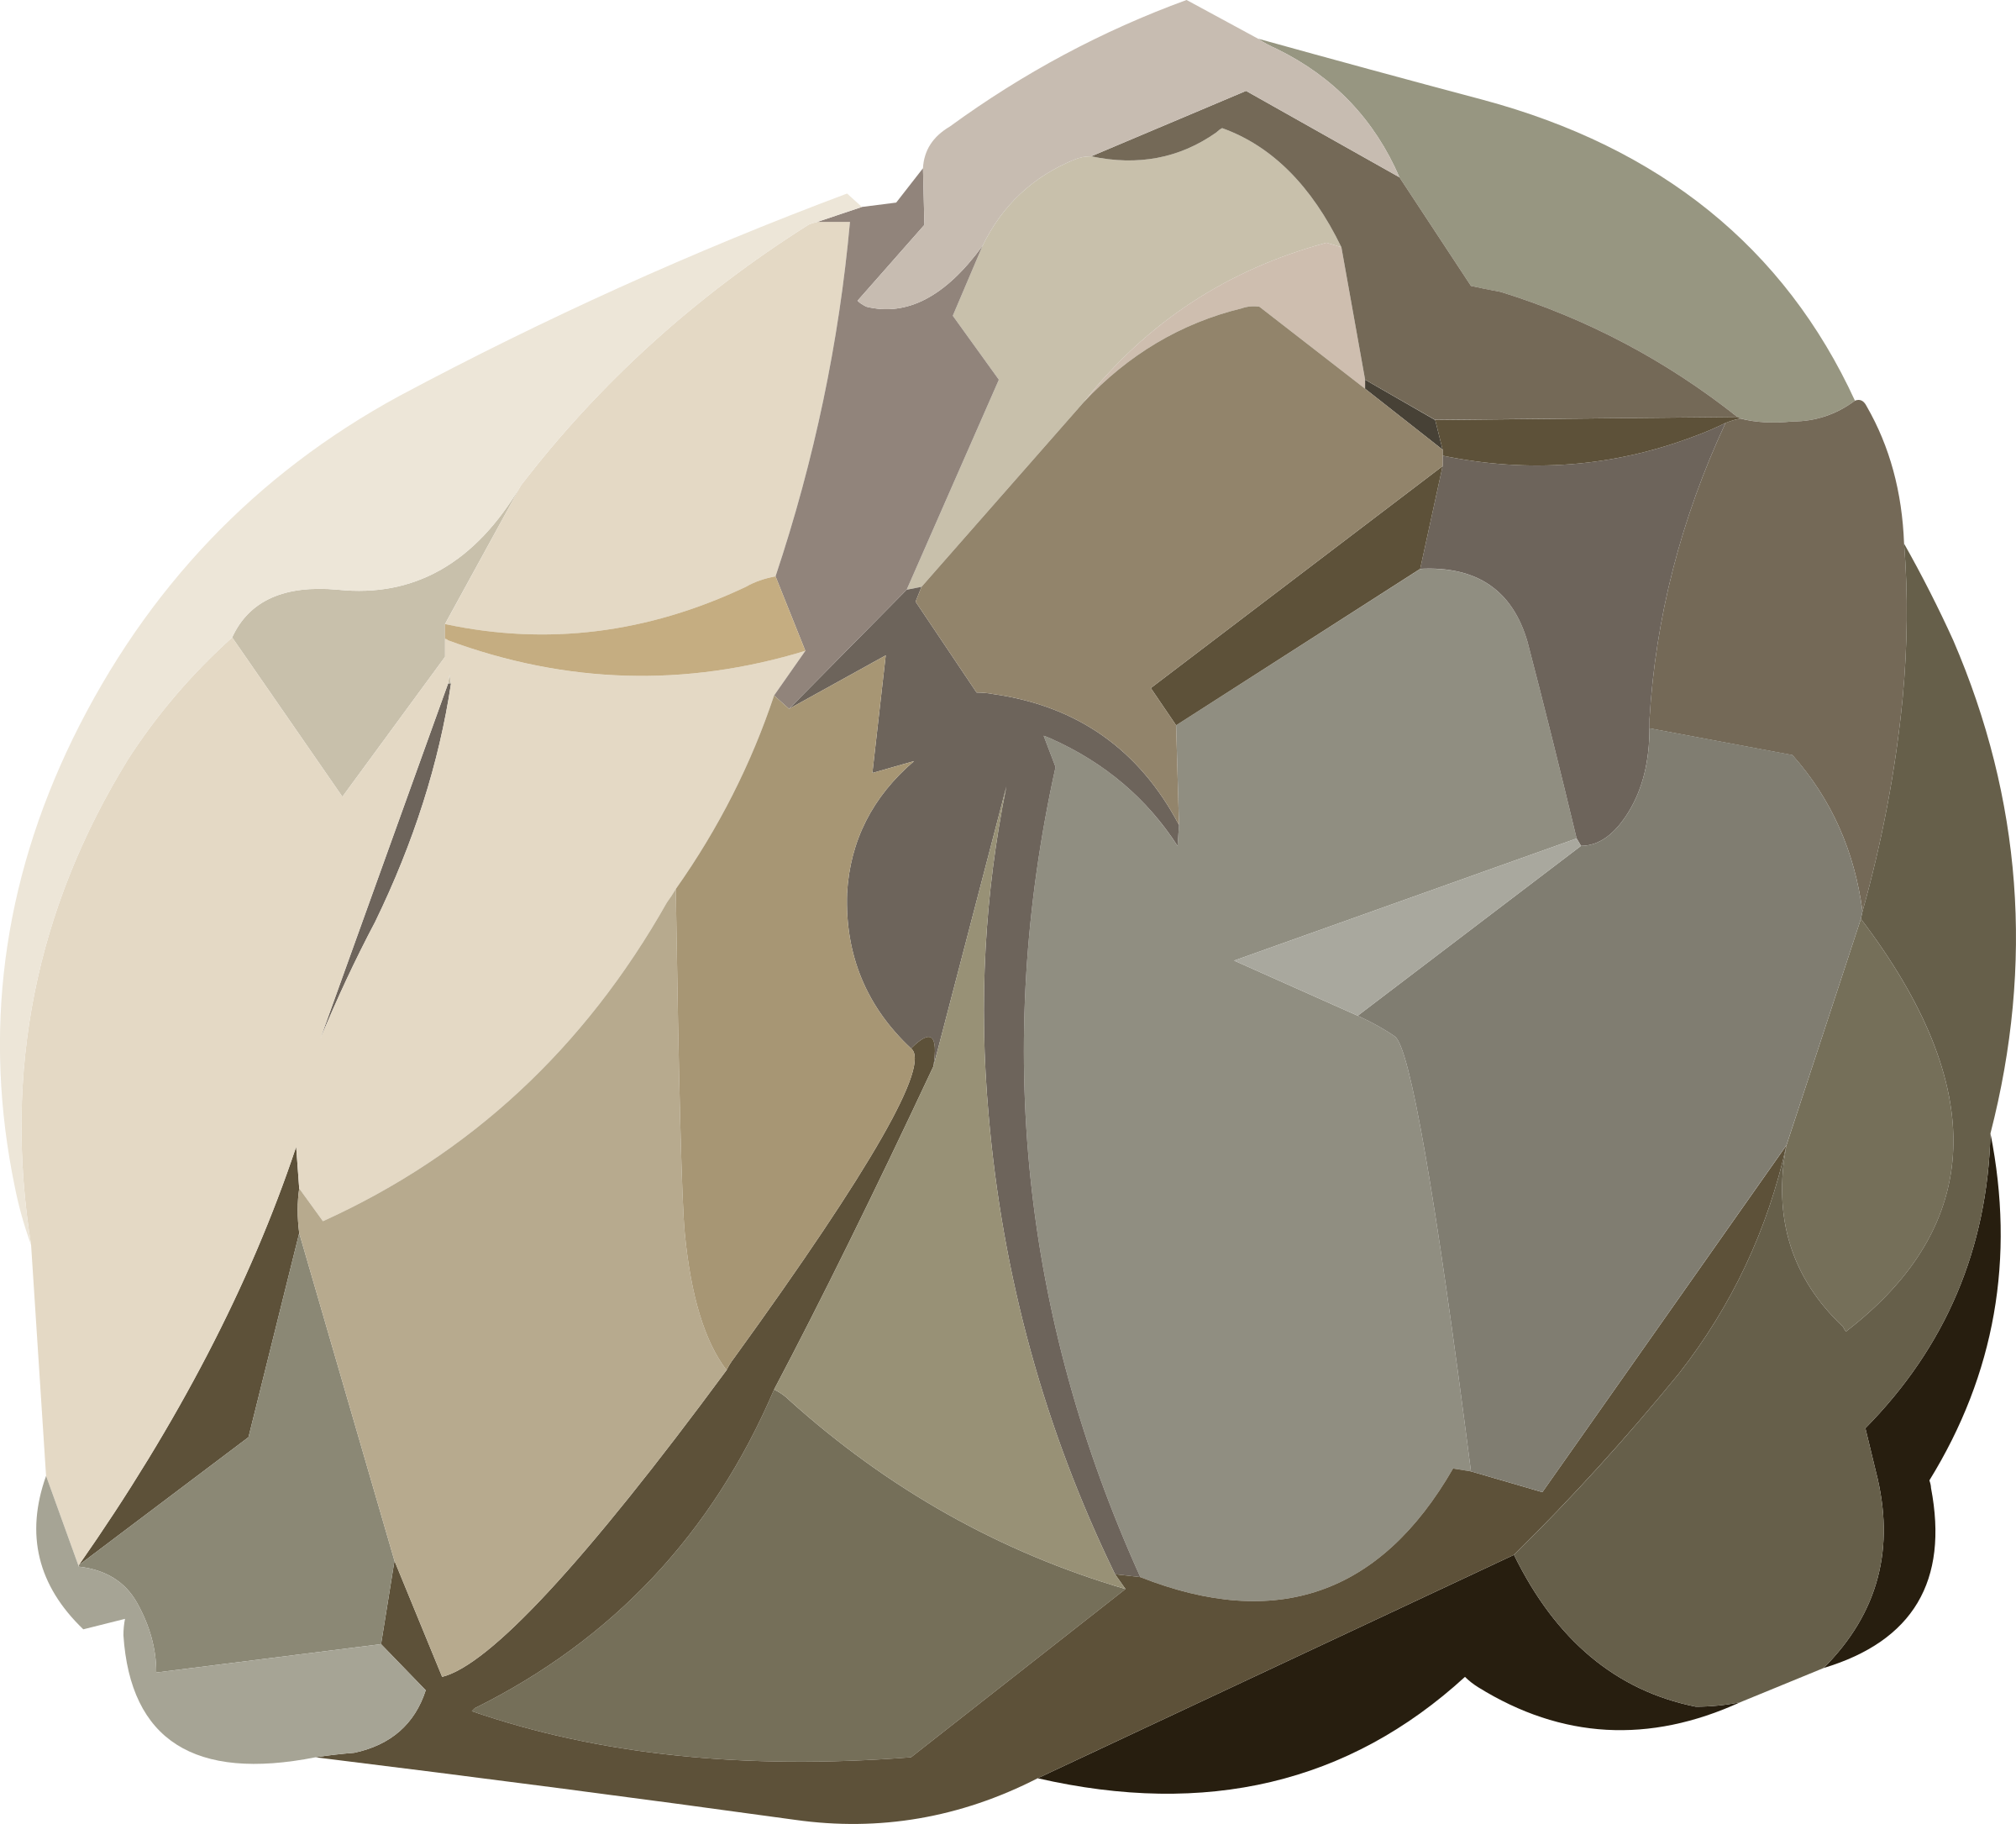 Rock Collection Clipart